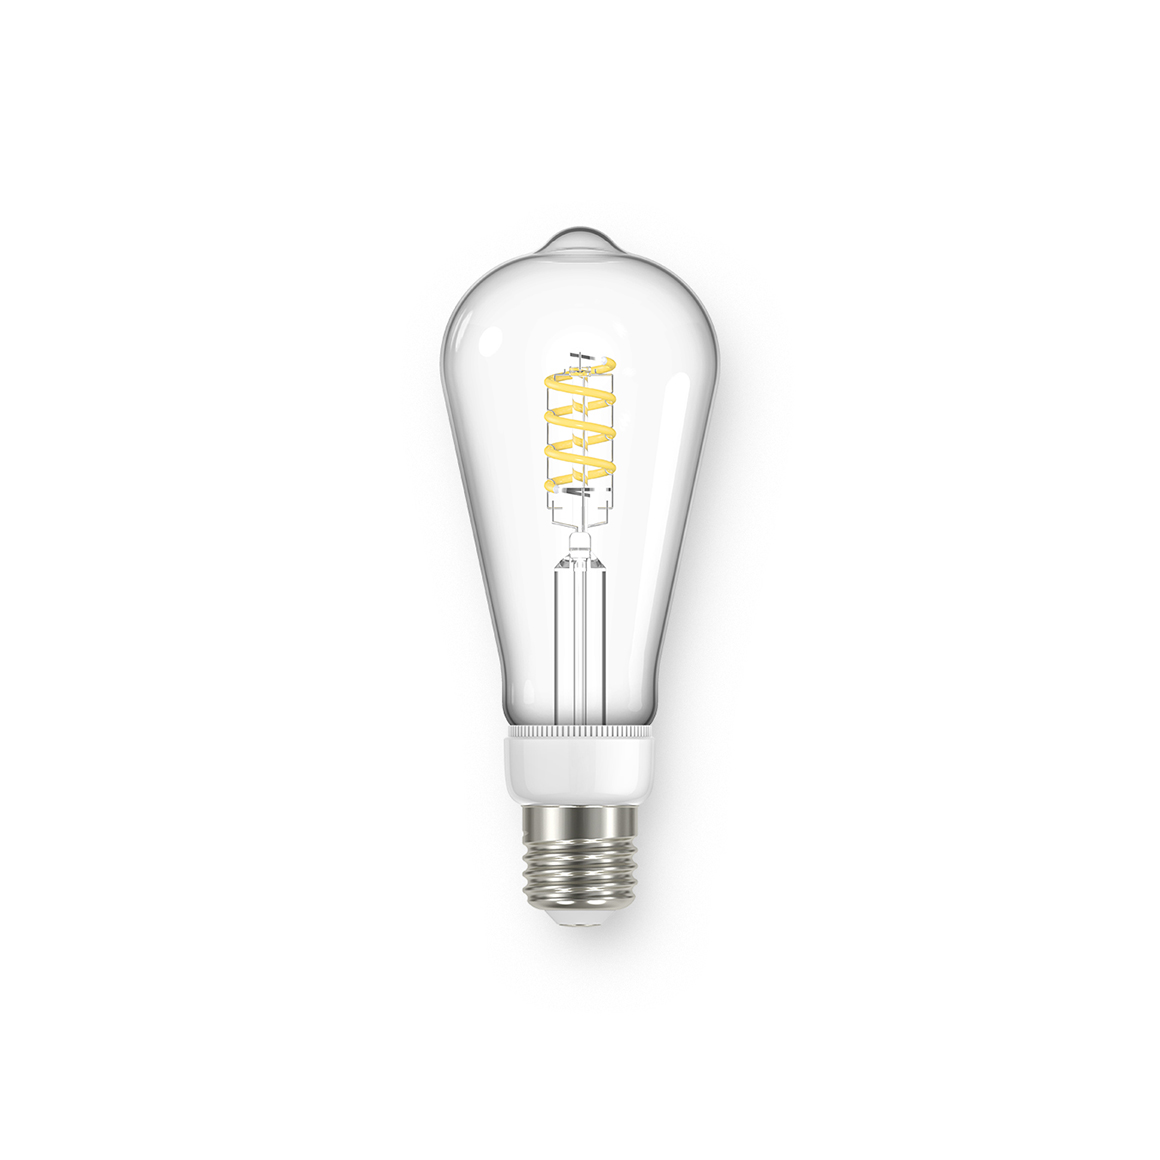 Filament ST19 Spiral Clear 450lm Dimmable E26